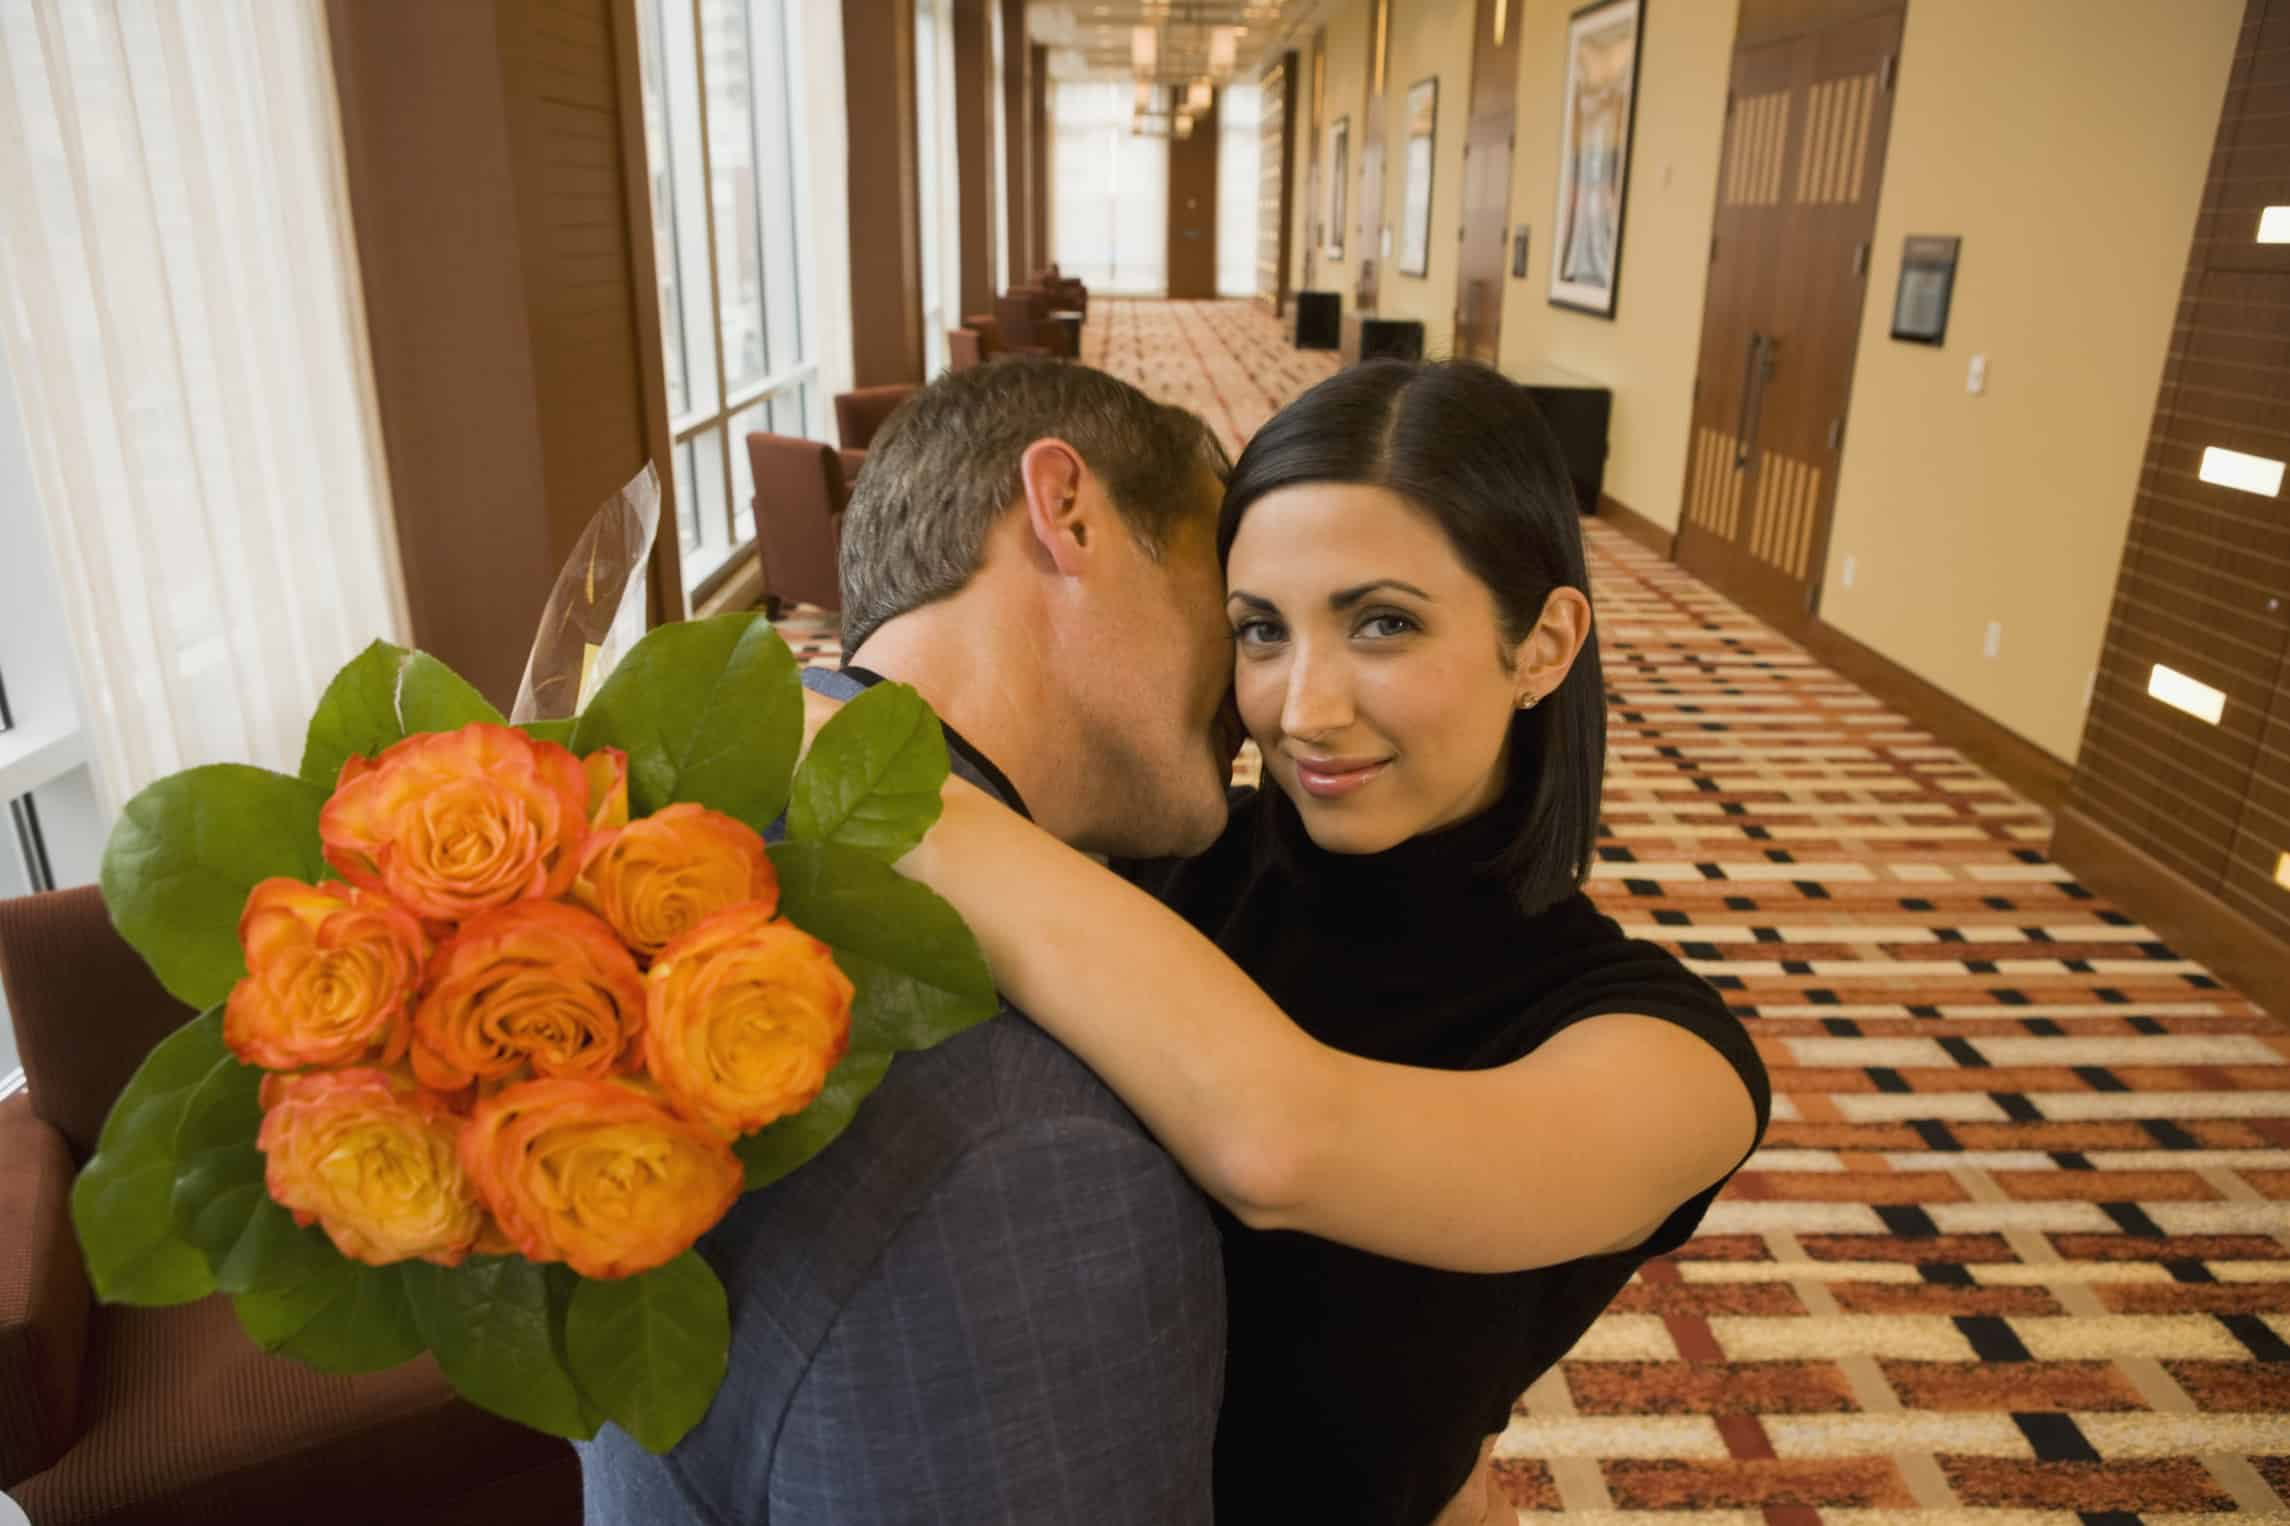 couple kissing, couple canoodling, couple making out, couple in hotel, man and woman in hotel, man and woman with flowers